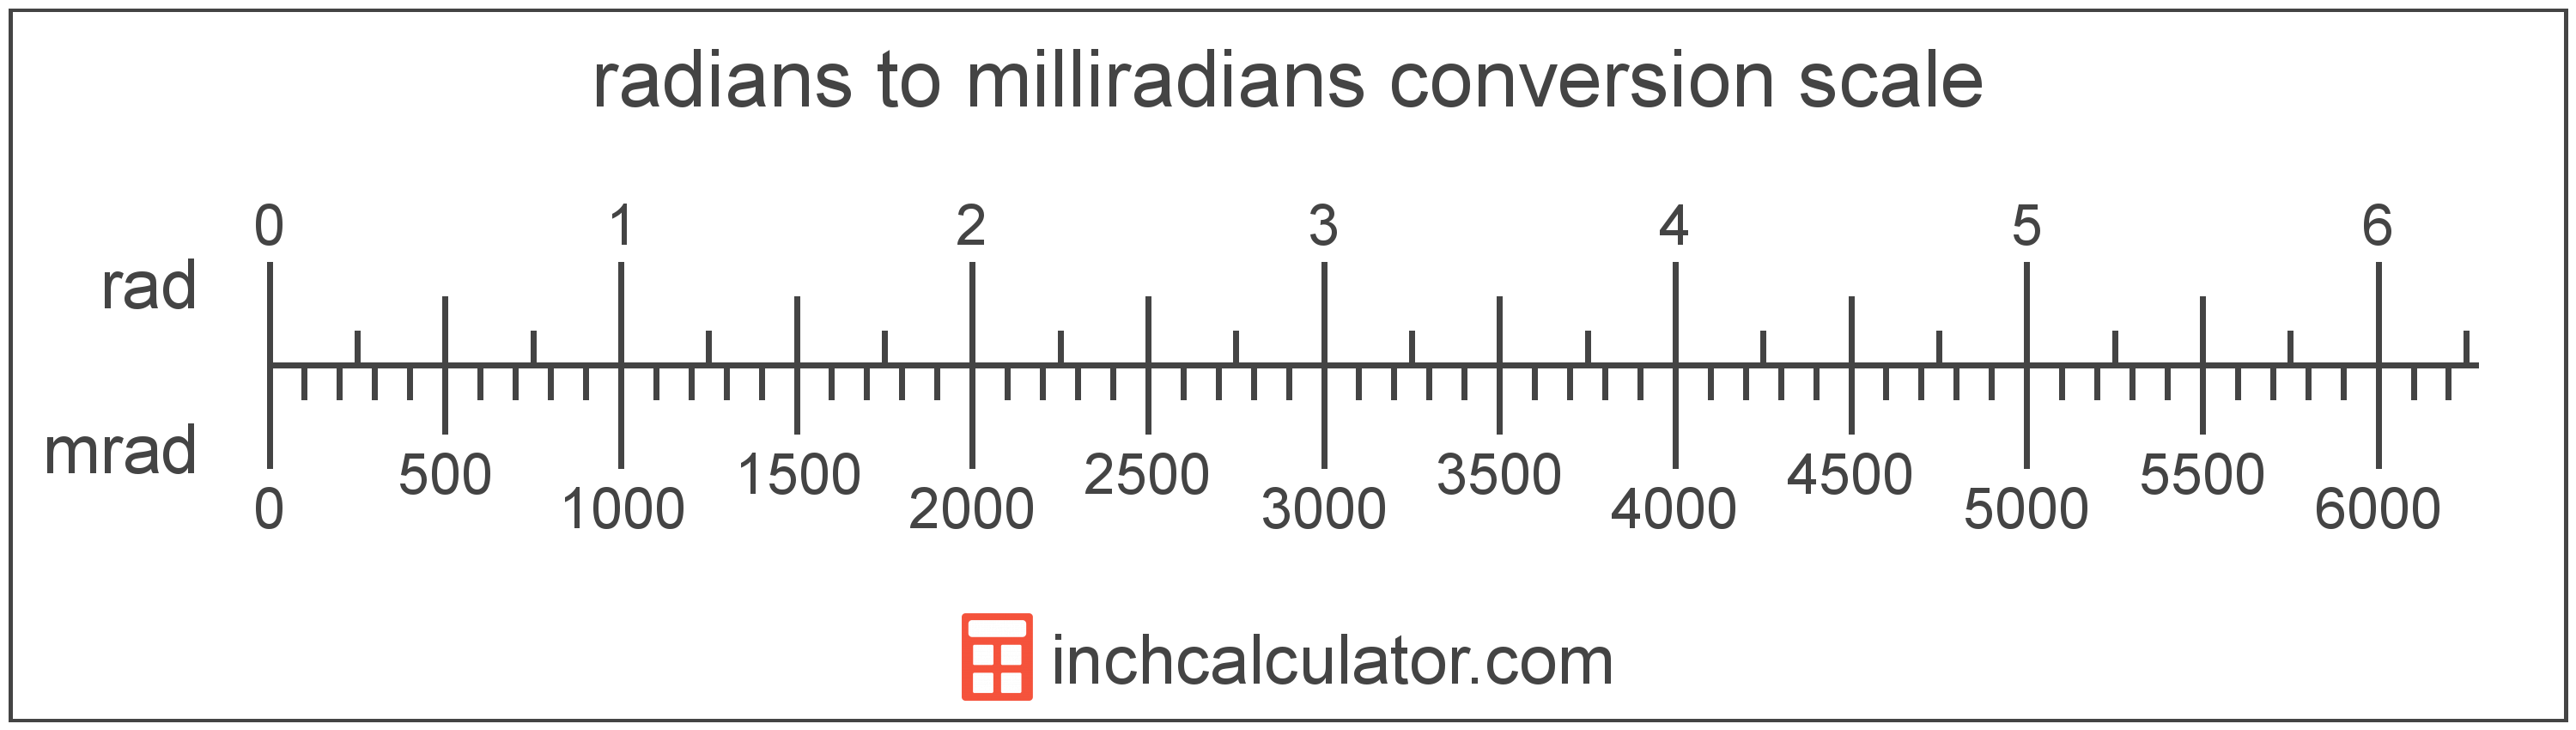 conversion scale showing milliradians and equivalent radians angle values